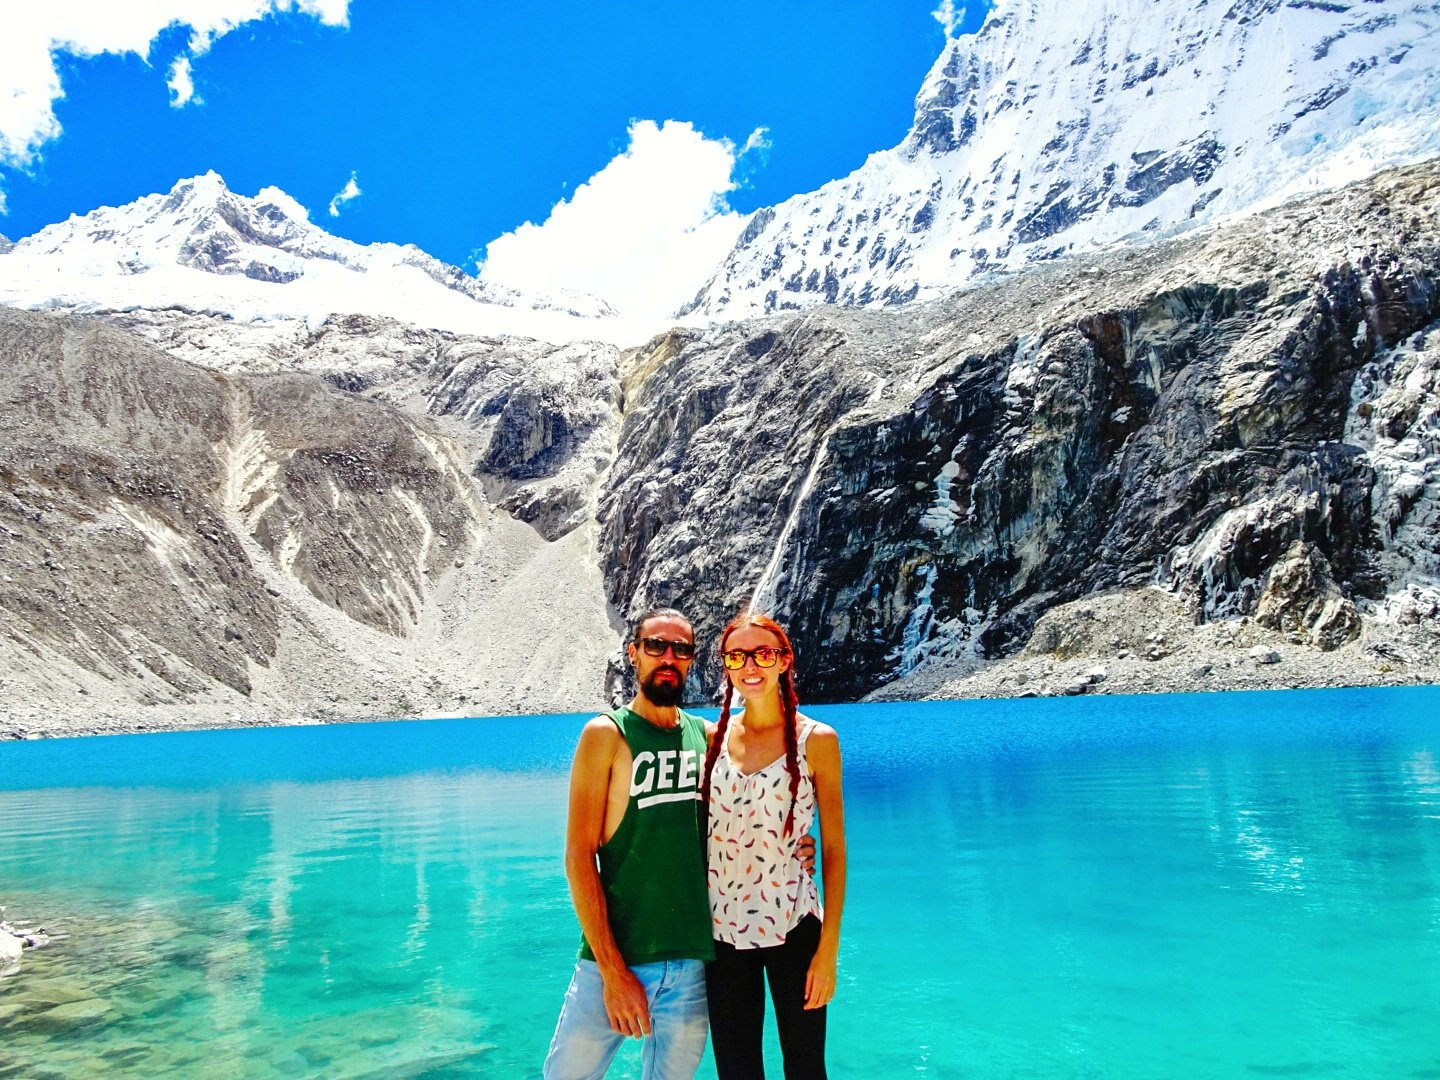 "<img src=""images/"" width=""800"" height=""600"" alt=""laguna 69 - wp image 584777471 - Peru: Our Guide to Huaraz and The Sexy Laguna 69"">"